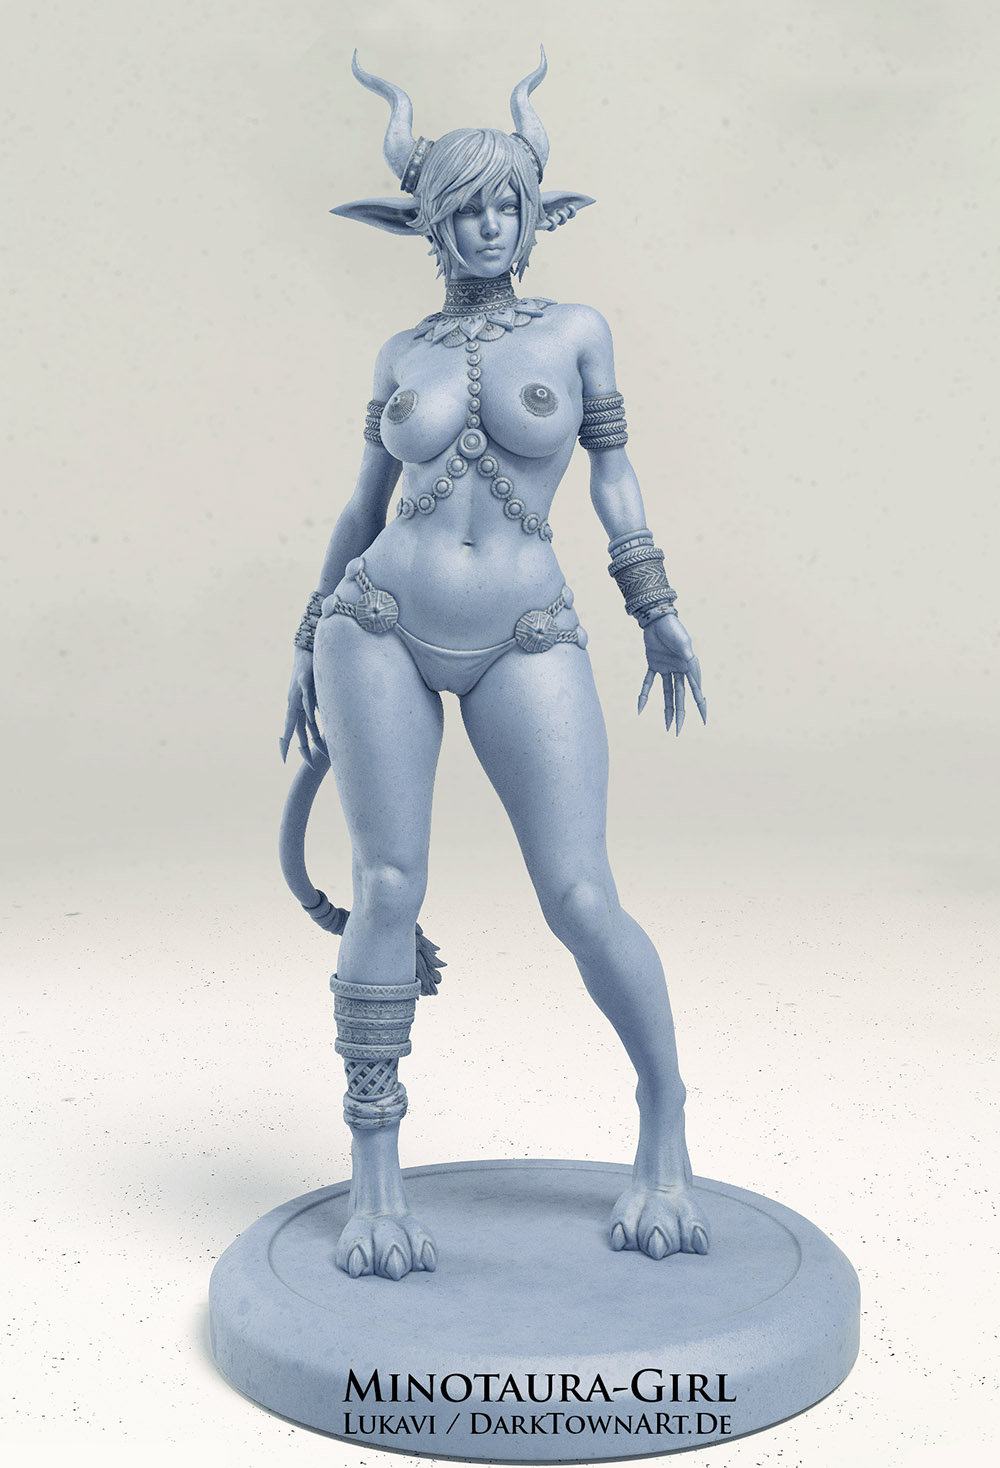 3D Model, Nipples Are Covered With Golden Plates (See Painted Variant/ Concept Art)